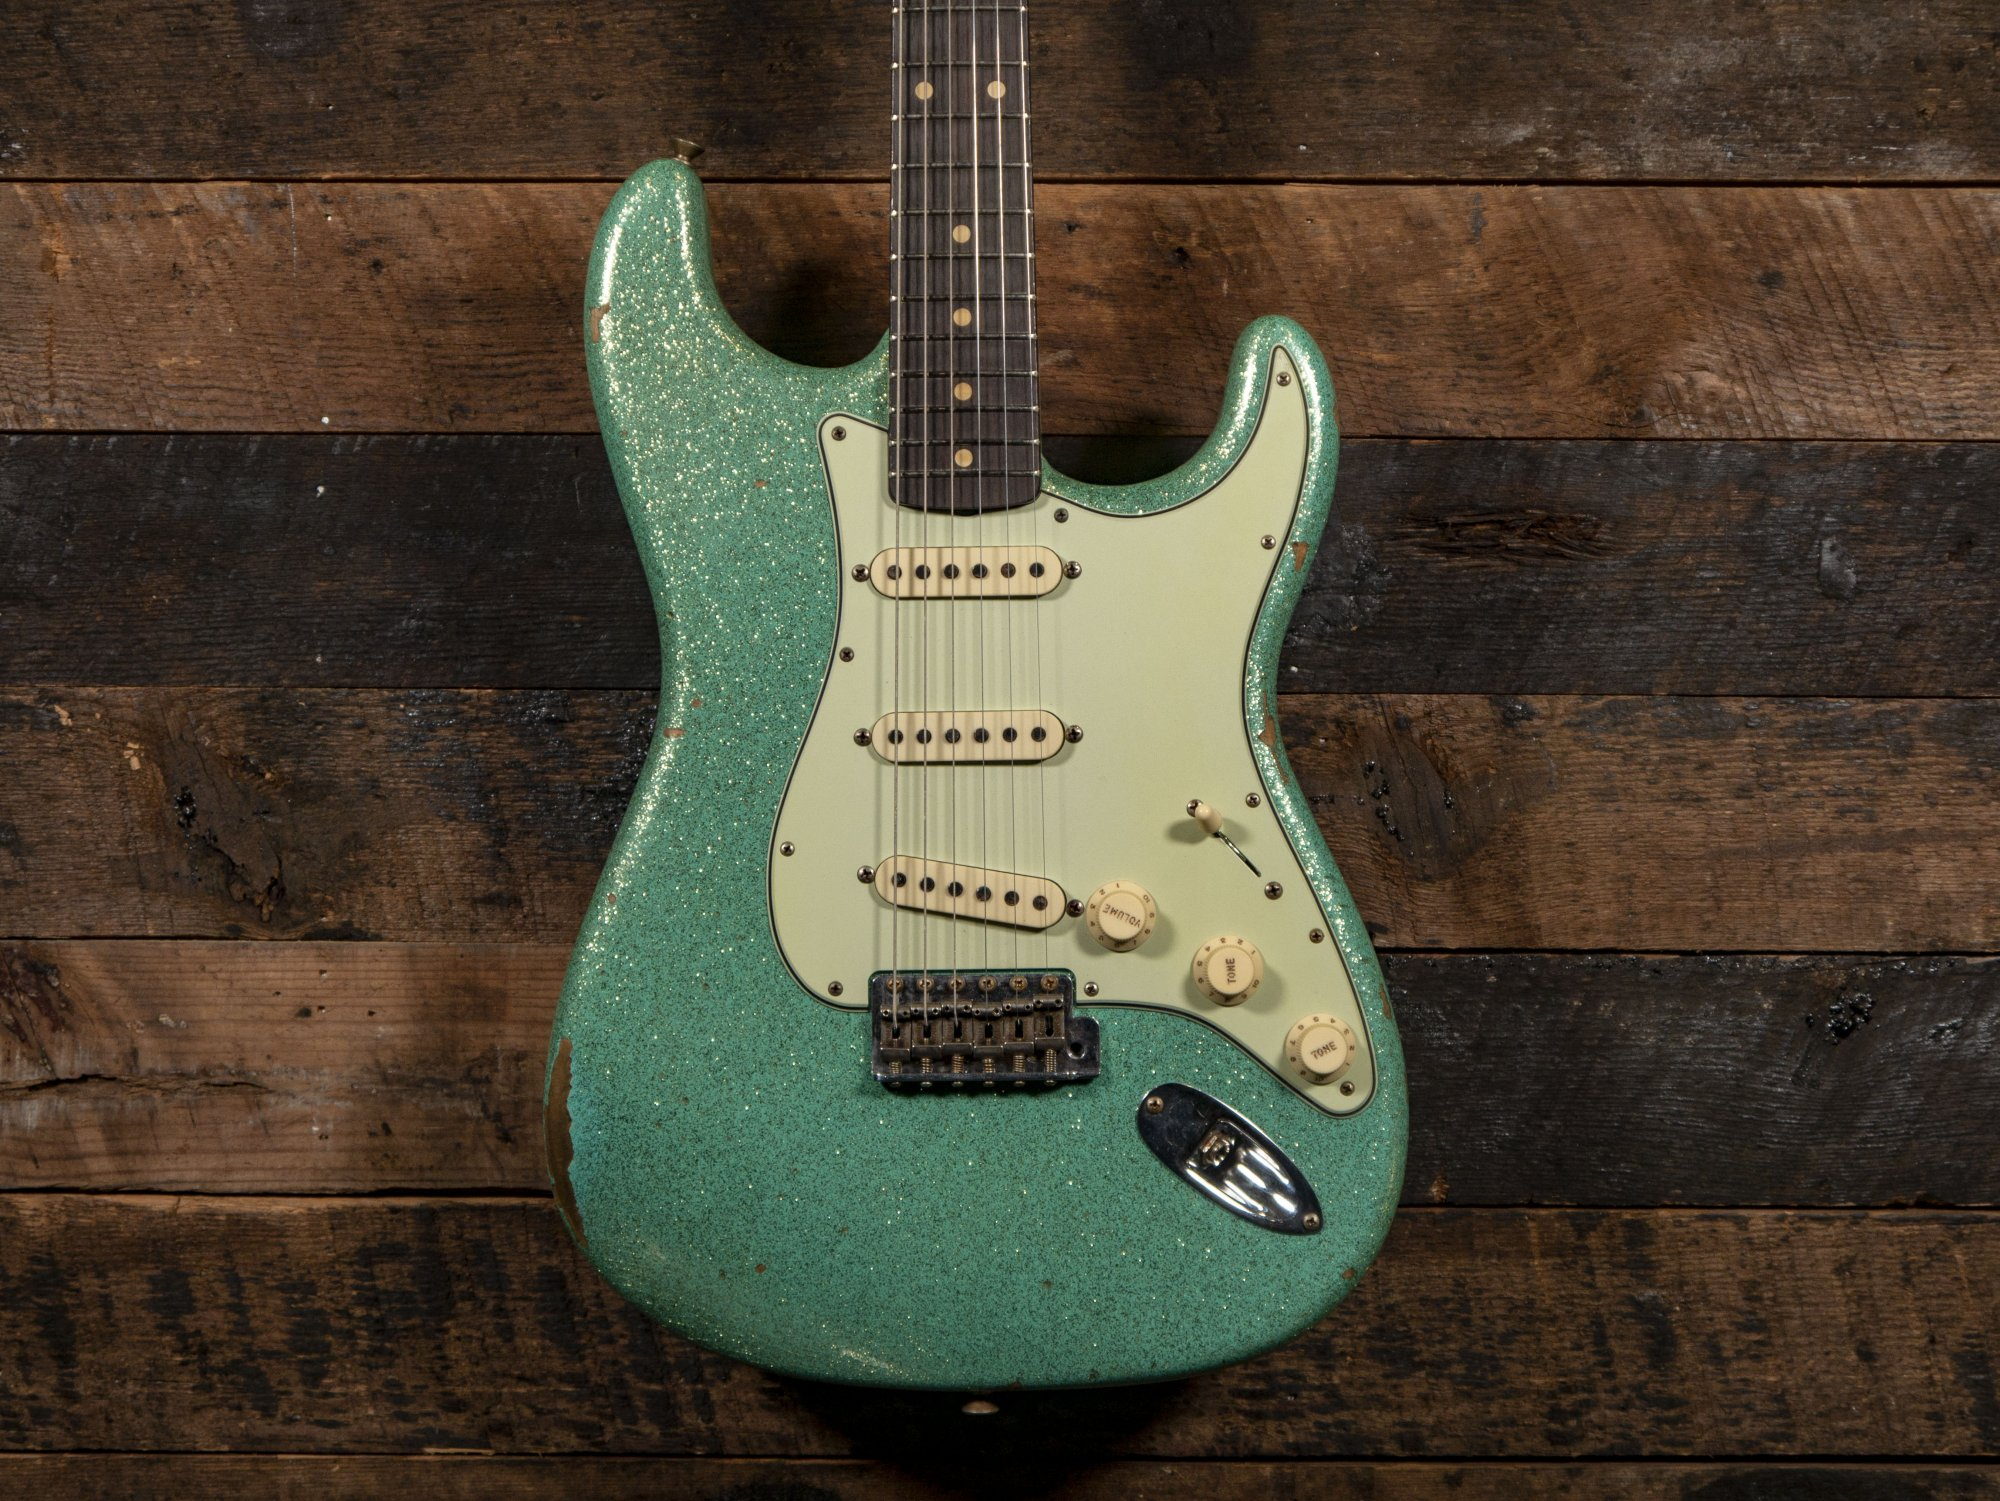 Fender Custom Shop Limited 1961 Stratocaster Hand-Selected Aged Sea Foam Green Sparkle